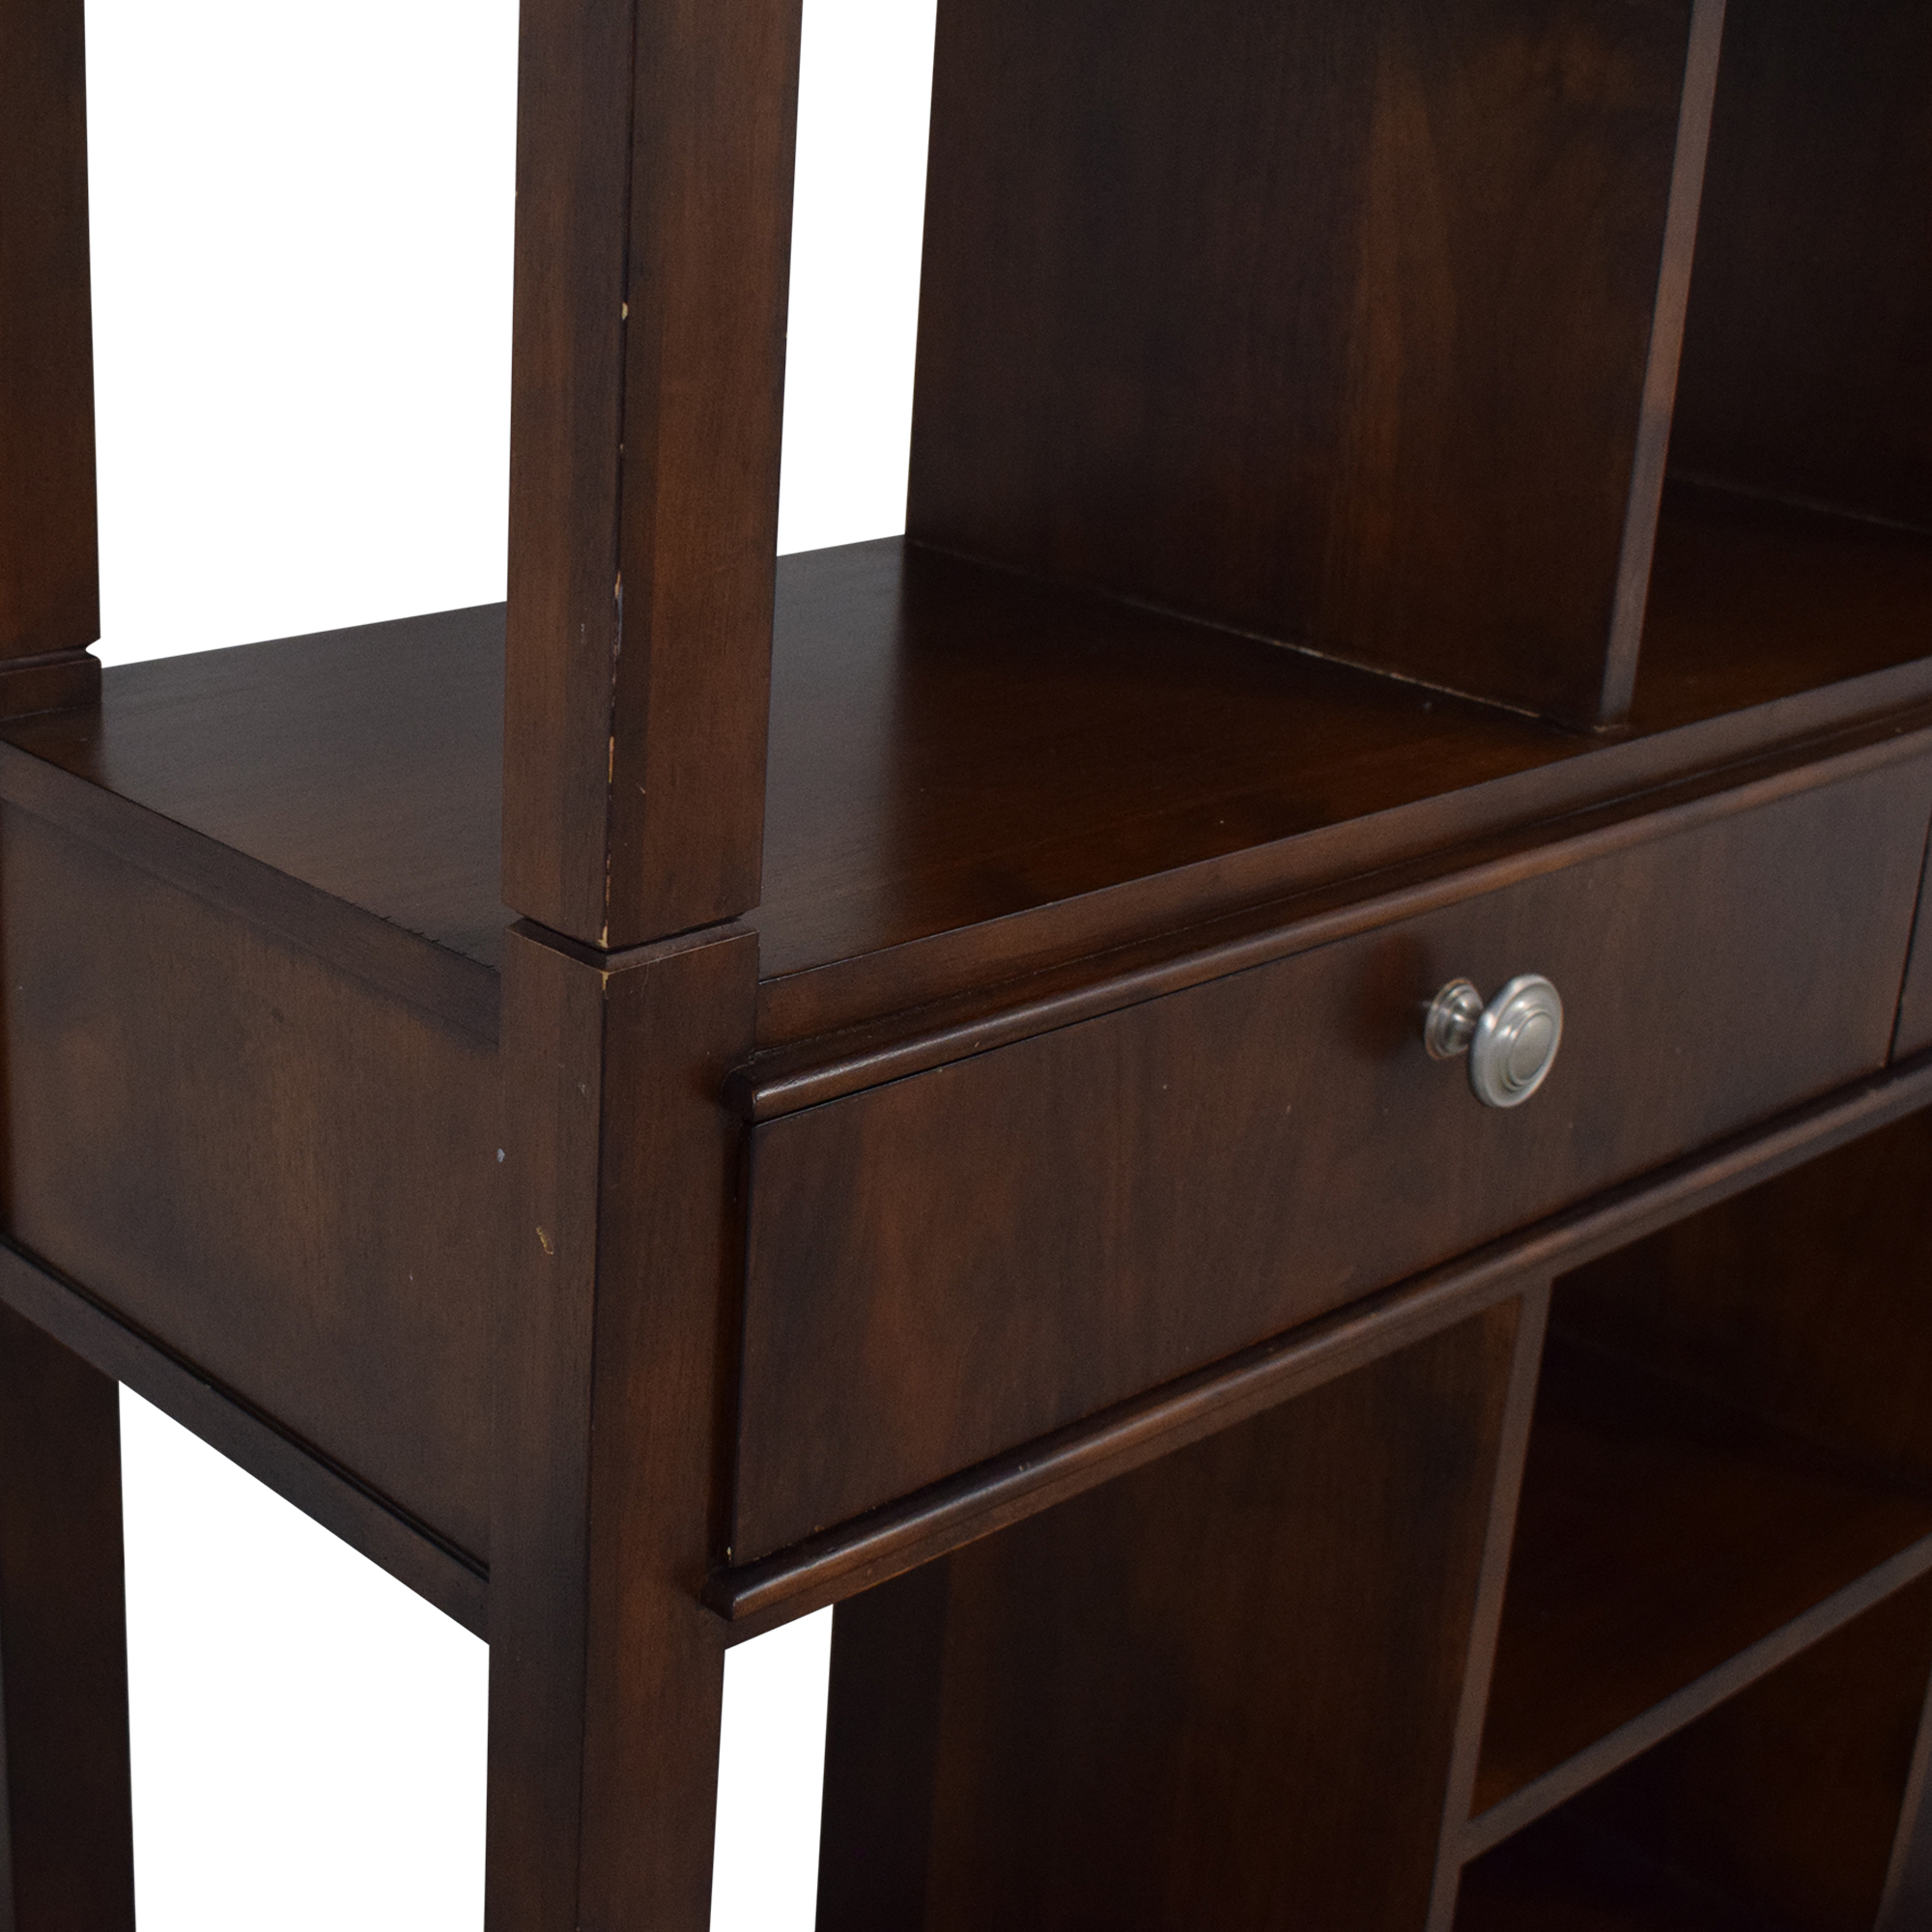 Stanley Furniture Etagere Bookcase / Bookcases & Shelving